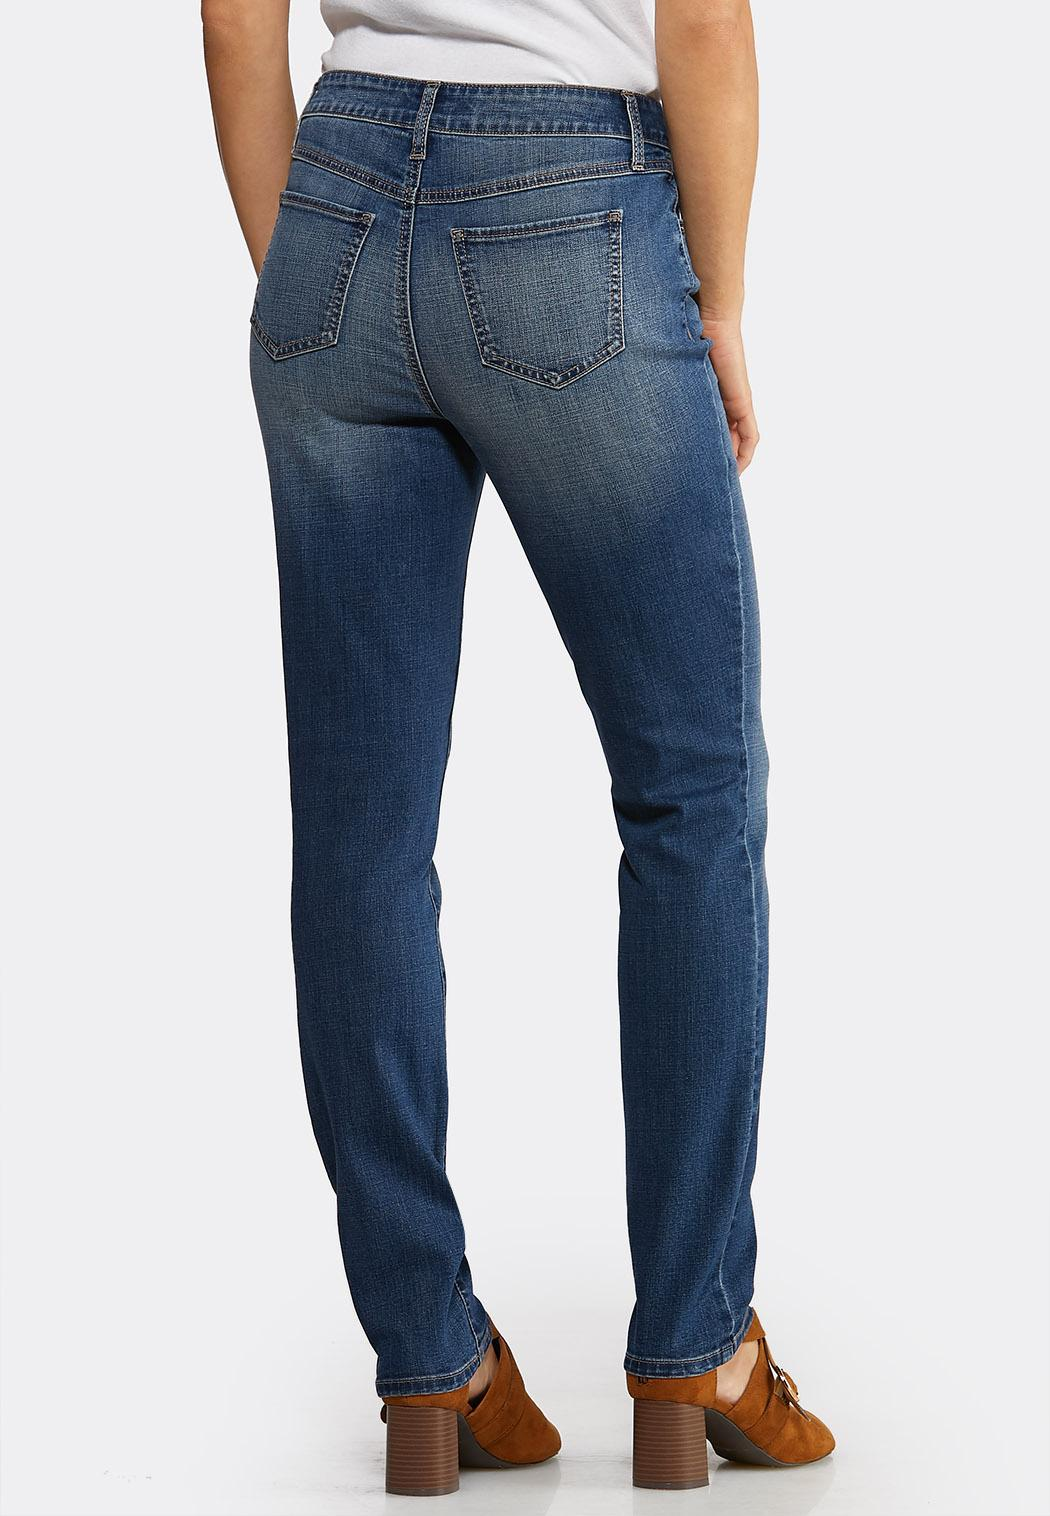 Petite Washed Skinny Jeans (Item #43991201)